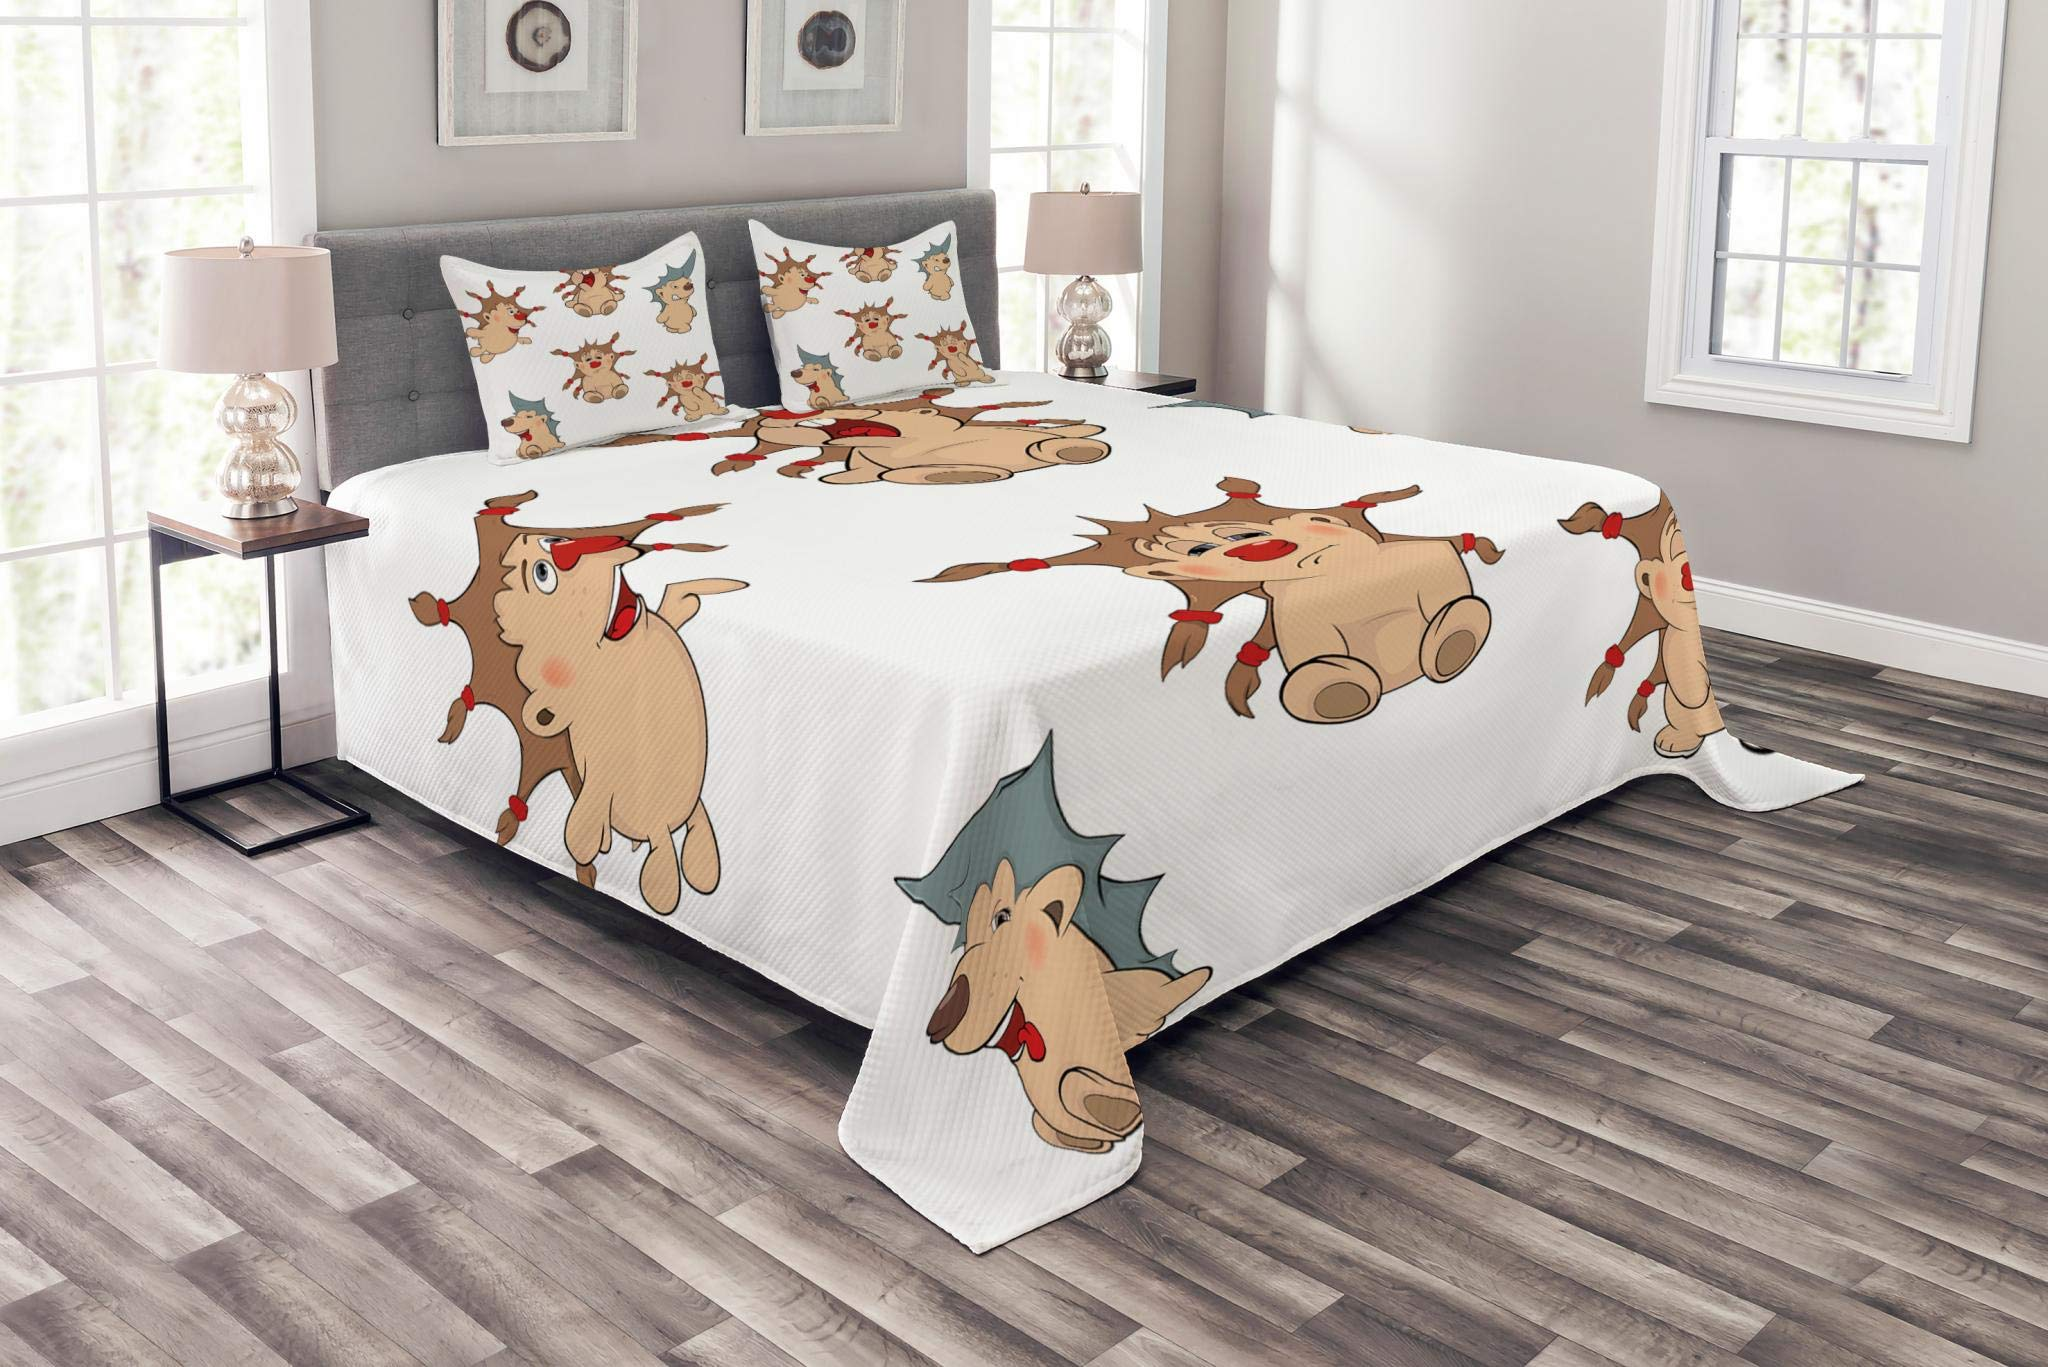 Lunarable Funny Bedspread Set King Size, Hedgehogs with Cool Hair Spiky Camouflage Native Australian Echidna Animals Nature, Decorative Quilted 3 Piece Coverlet Set with 2 Pillow Shams, Brown Tan